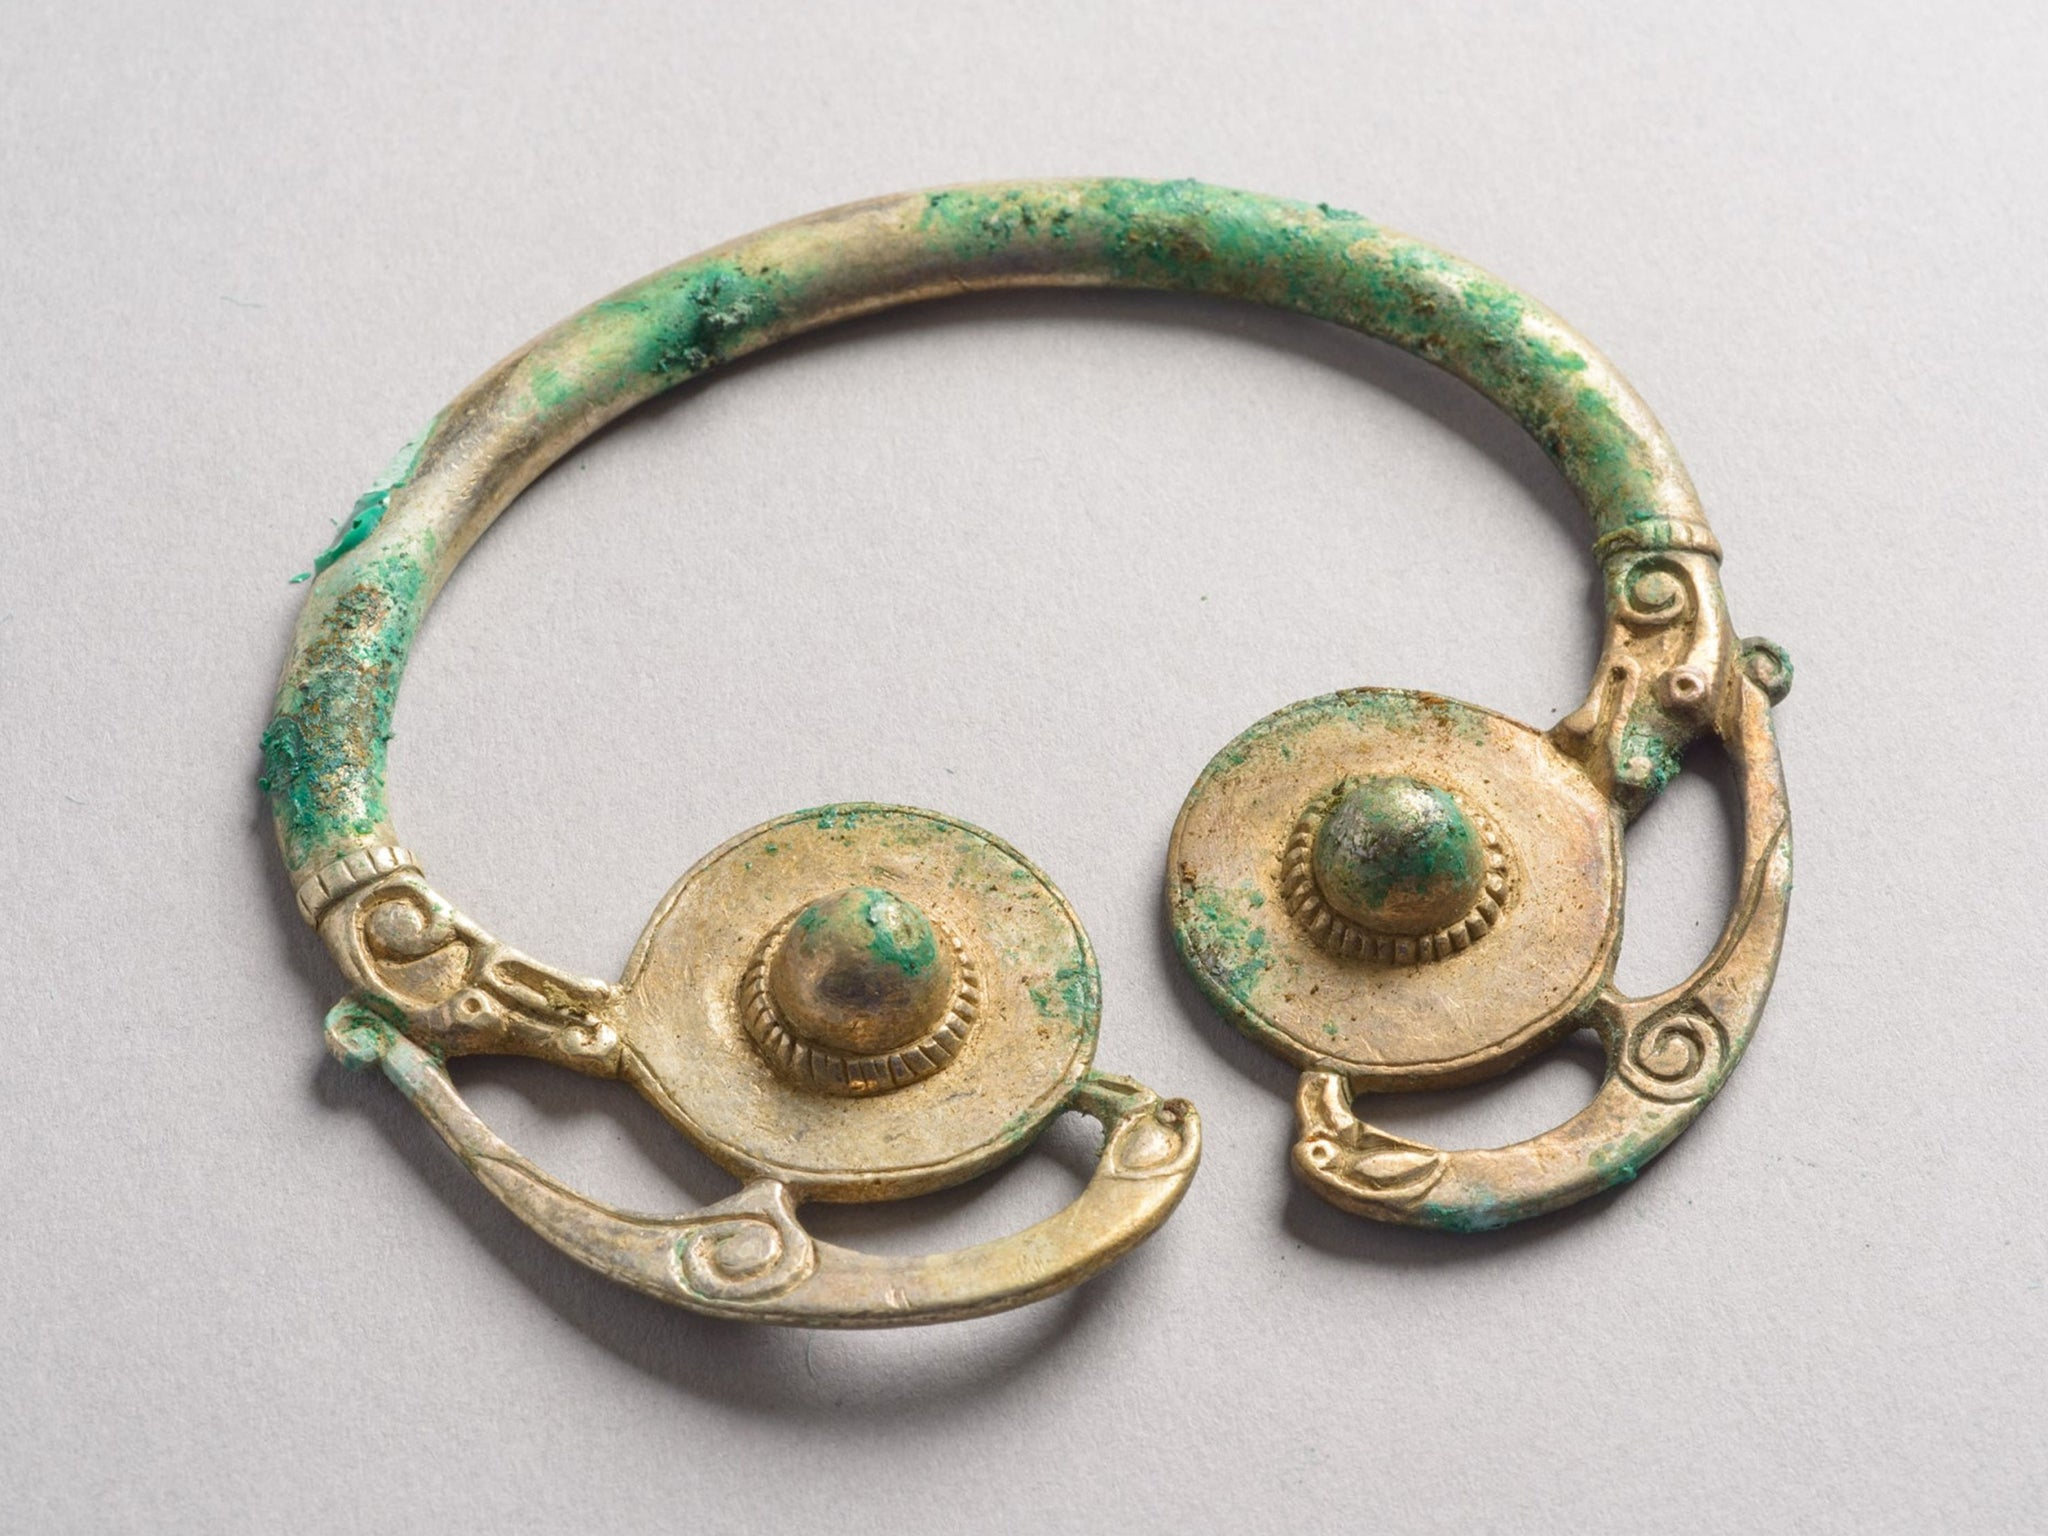 A 1,000-year-old Viking treasure hoard has been discovered in Scotland